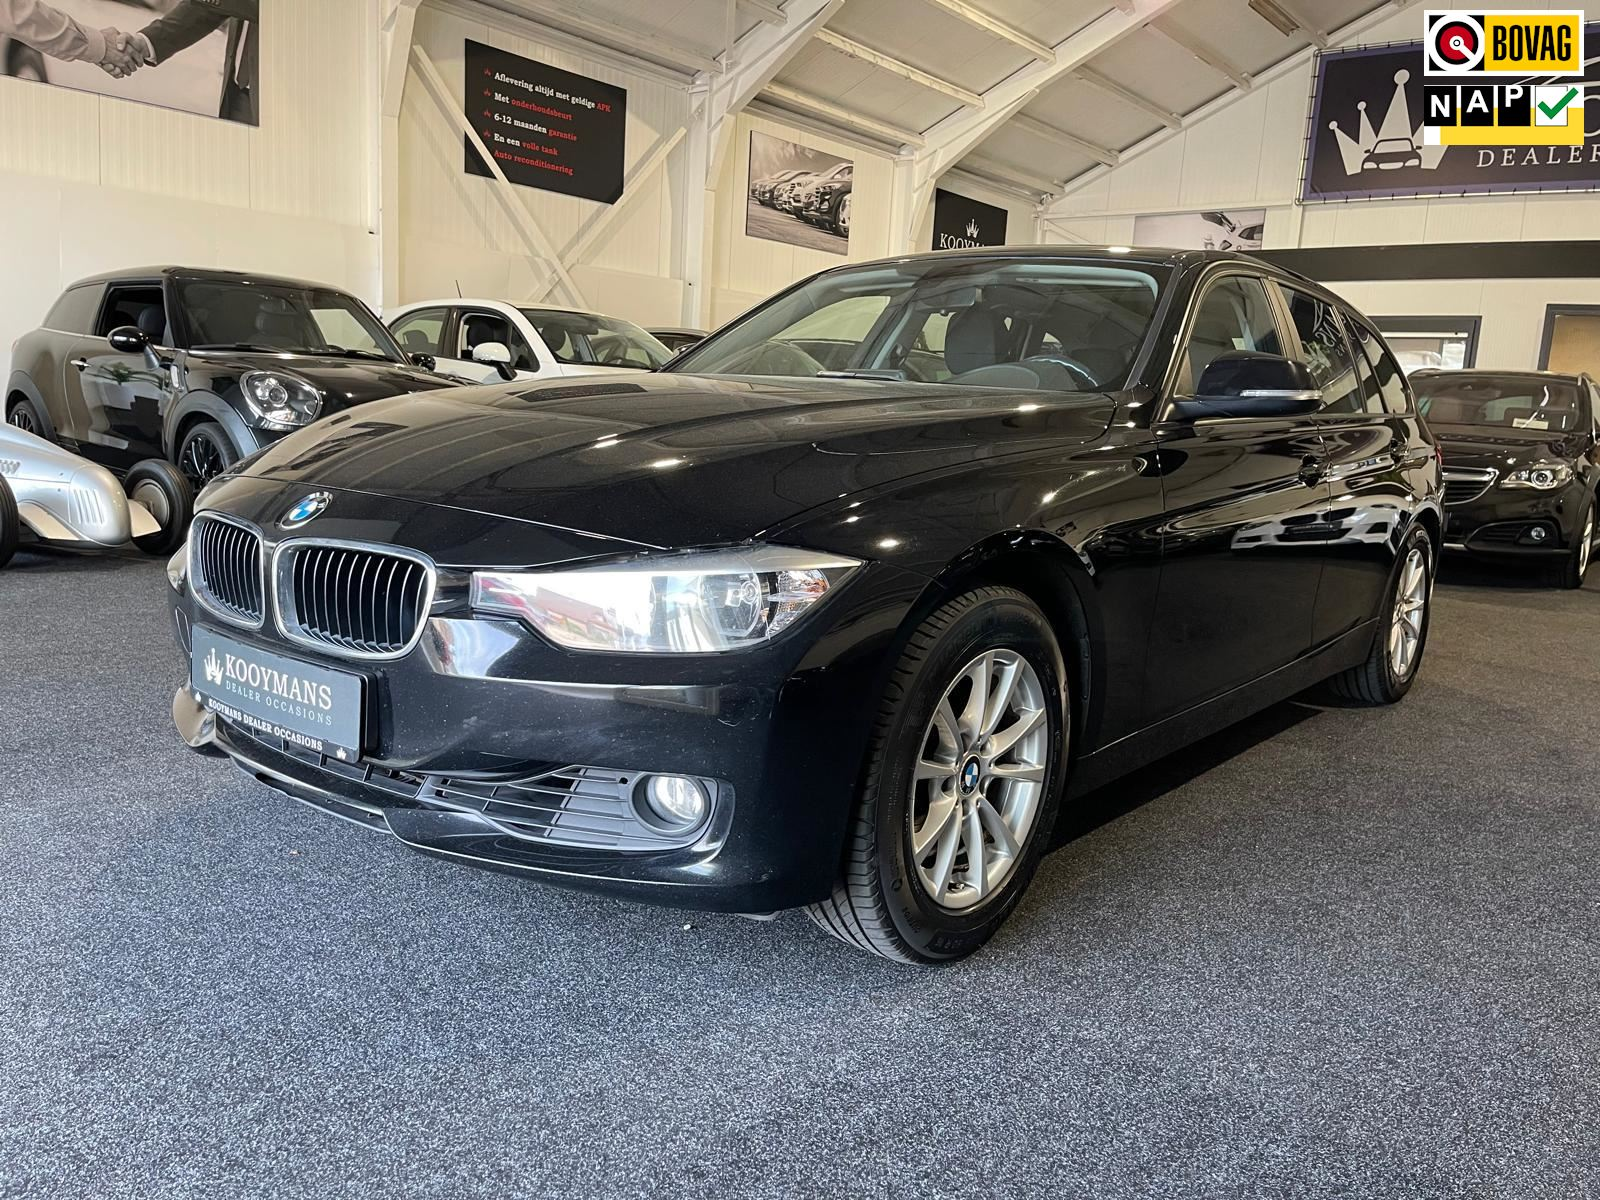 BMW 3-serie Touring occasion - Kooymans Dealer Occasions